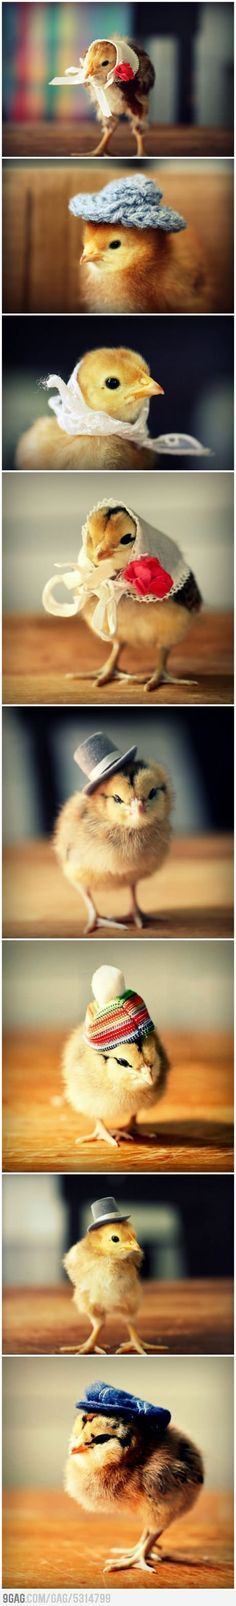 In case you are having a bad day, here are some chicks in little hats. enjoy